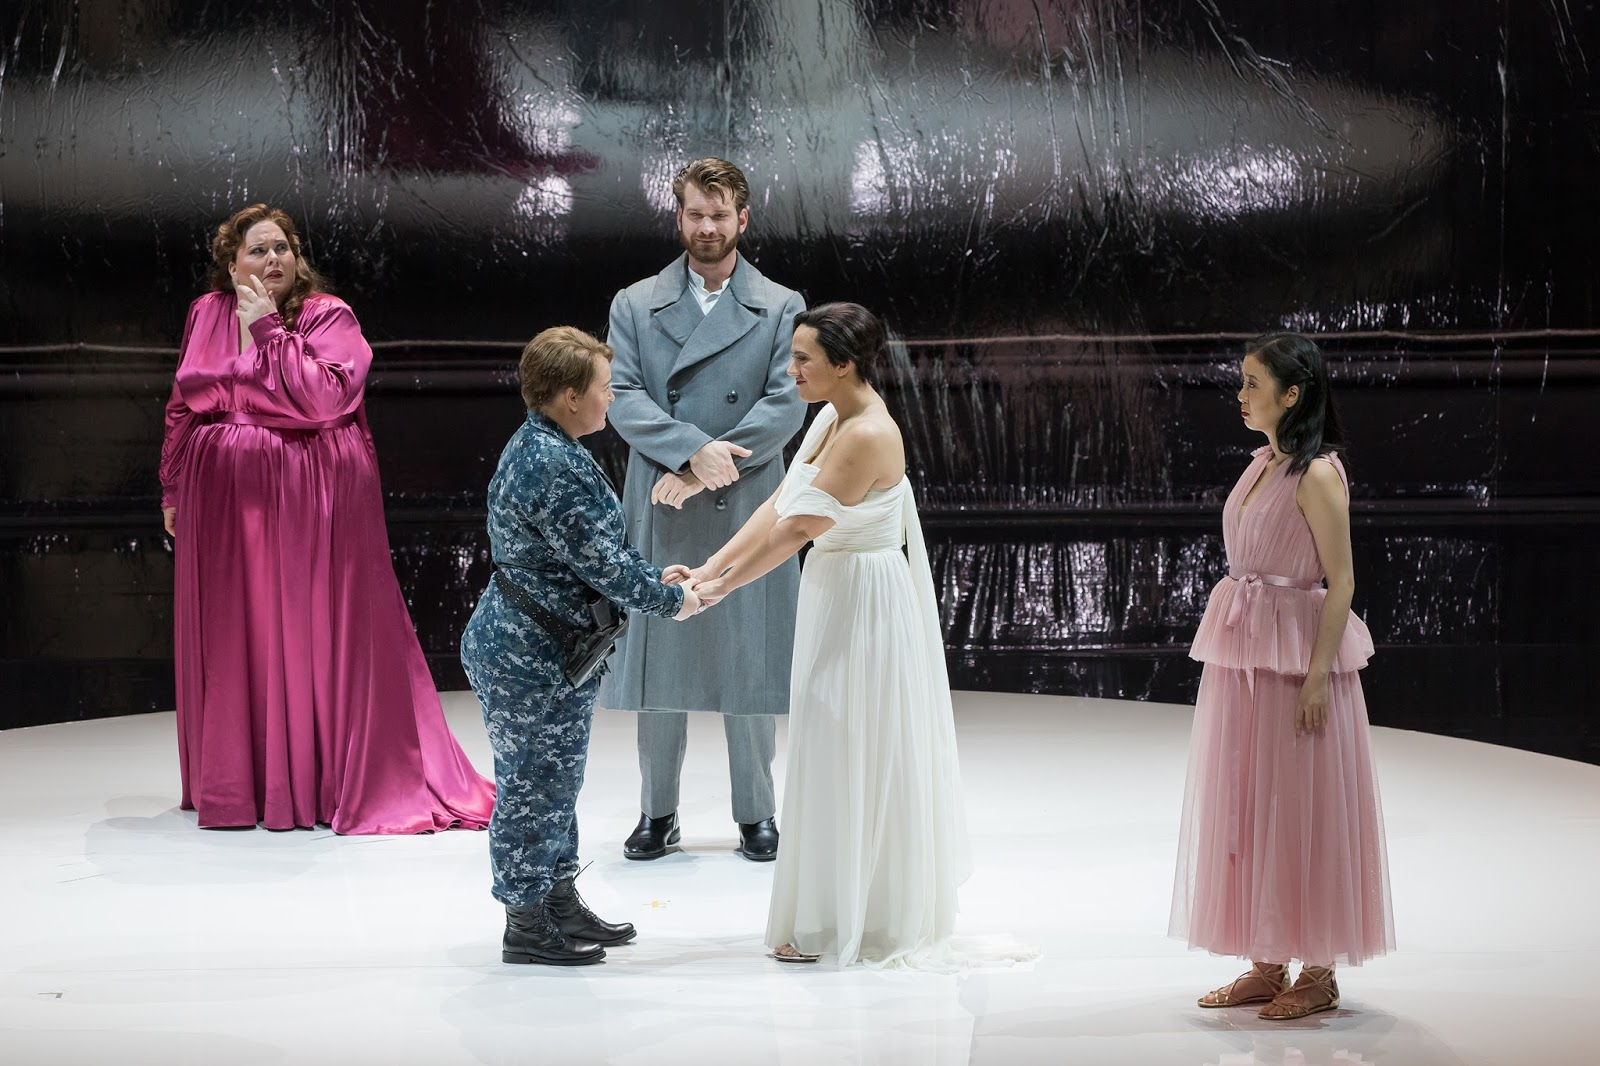 IN PERFORMANCE: (from left to right) soprano ANGELA MEADE in the title rôle, mezzo-soprano ELIZABETH DESHONG as Ruggiero, baritone MICHAEL ADAMS as Melisso, mezzo-soprano DANIELA MACK as Bradamante, and soprano YING FANG as Morgana in Washington National Opera's production of Georg Friedrich Händel's ALCINA, November 2017 [Photo by Scott Suchman, © by Washington National Opera]